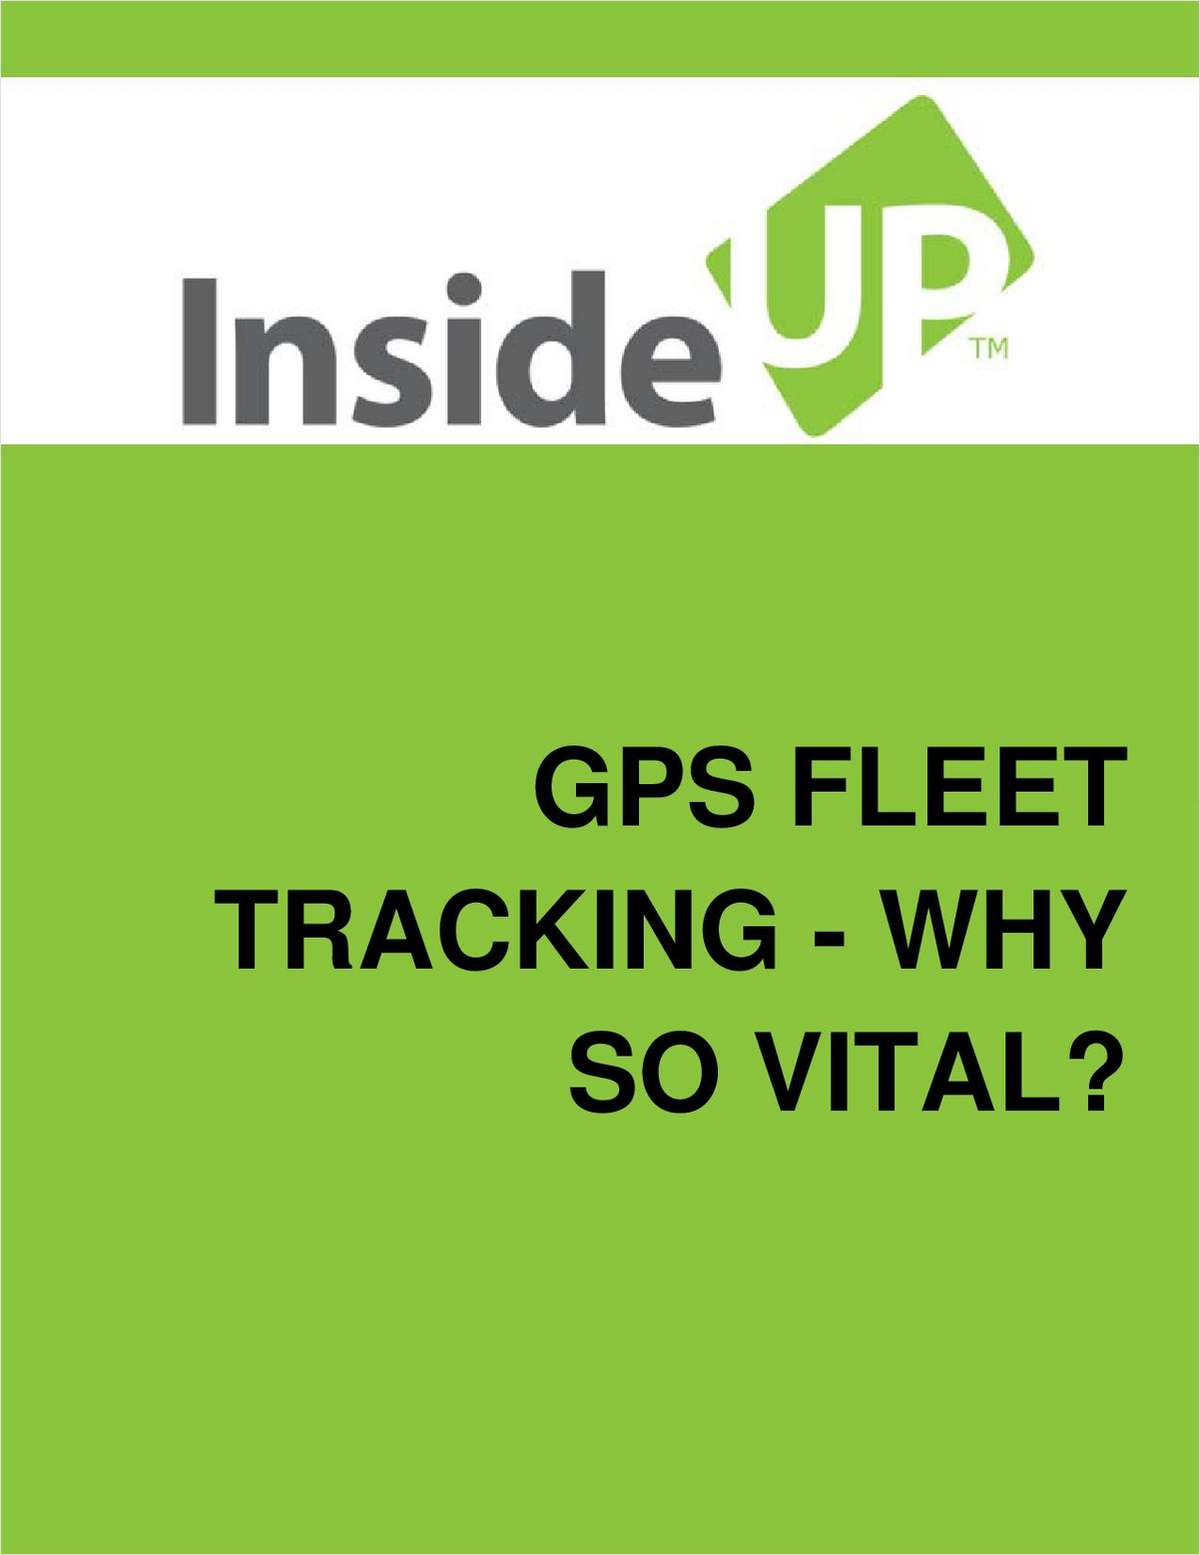 GPS Fleet Tracking - Why So Vital?